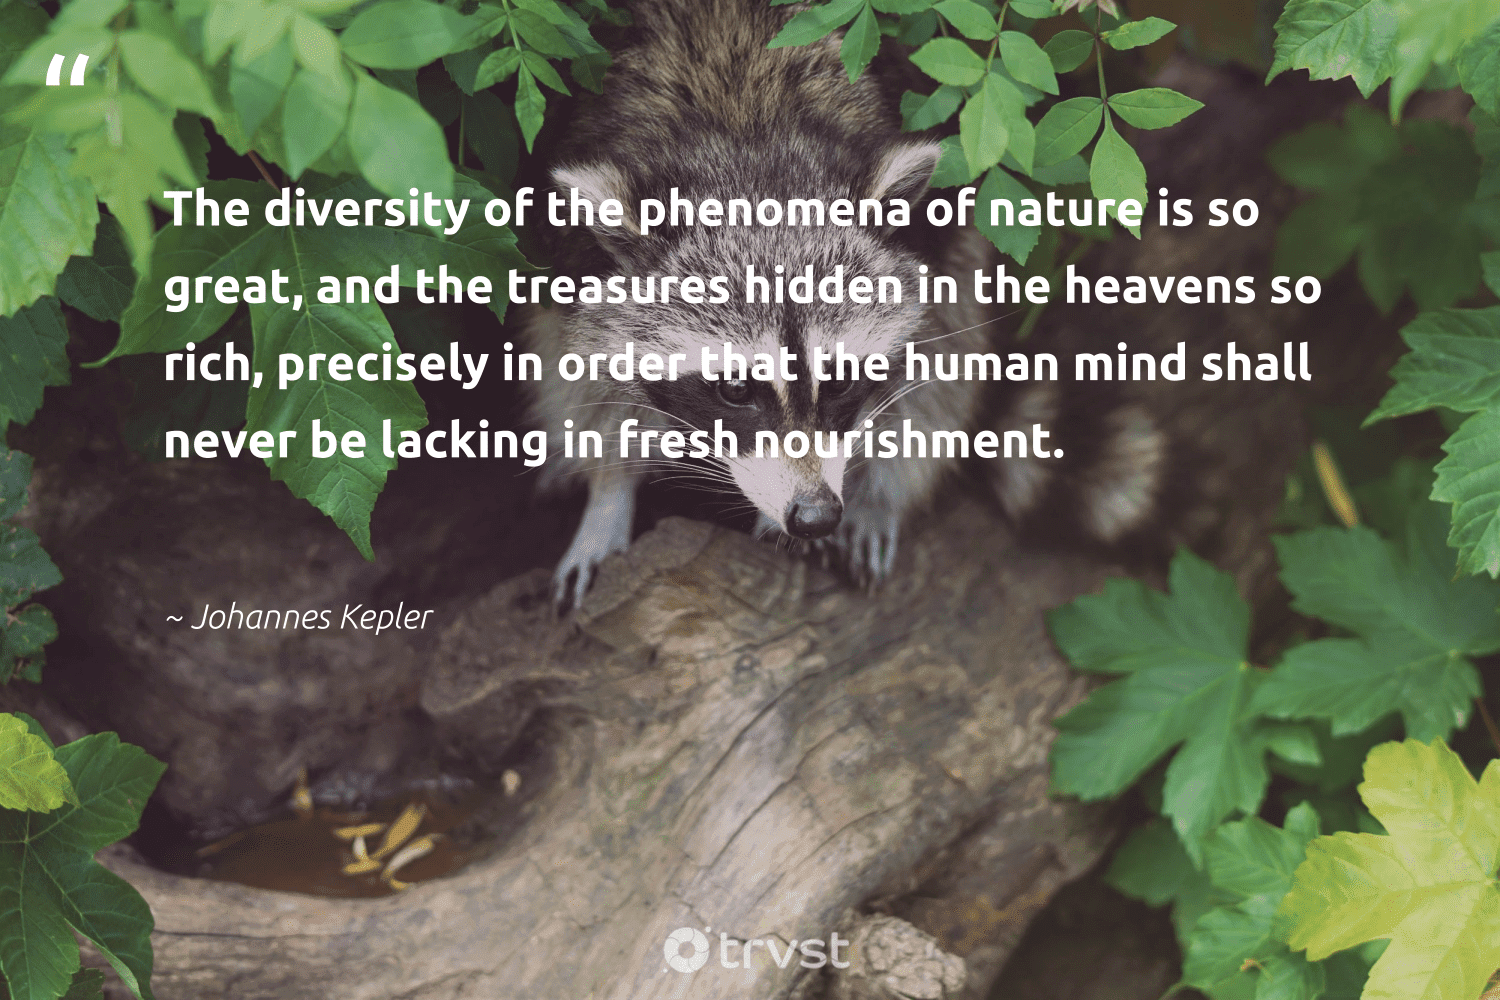 """""""The diversity of the phenomena of nature is so great, and the treasures hidden in the heavens so rich, precisely in order that the human mind shall never be lacking in fresh nourishment.""""  - Johannes Kepler #trvst #quotes #nature #diversity #representationmatters #planet #invertebrate #socialgood #bethechange #discrimination #environment #tiger"""